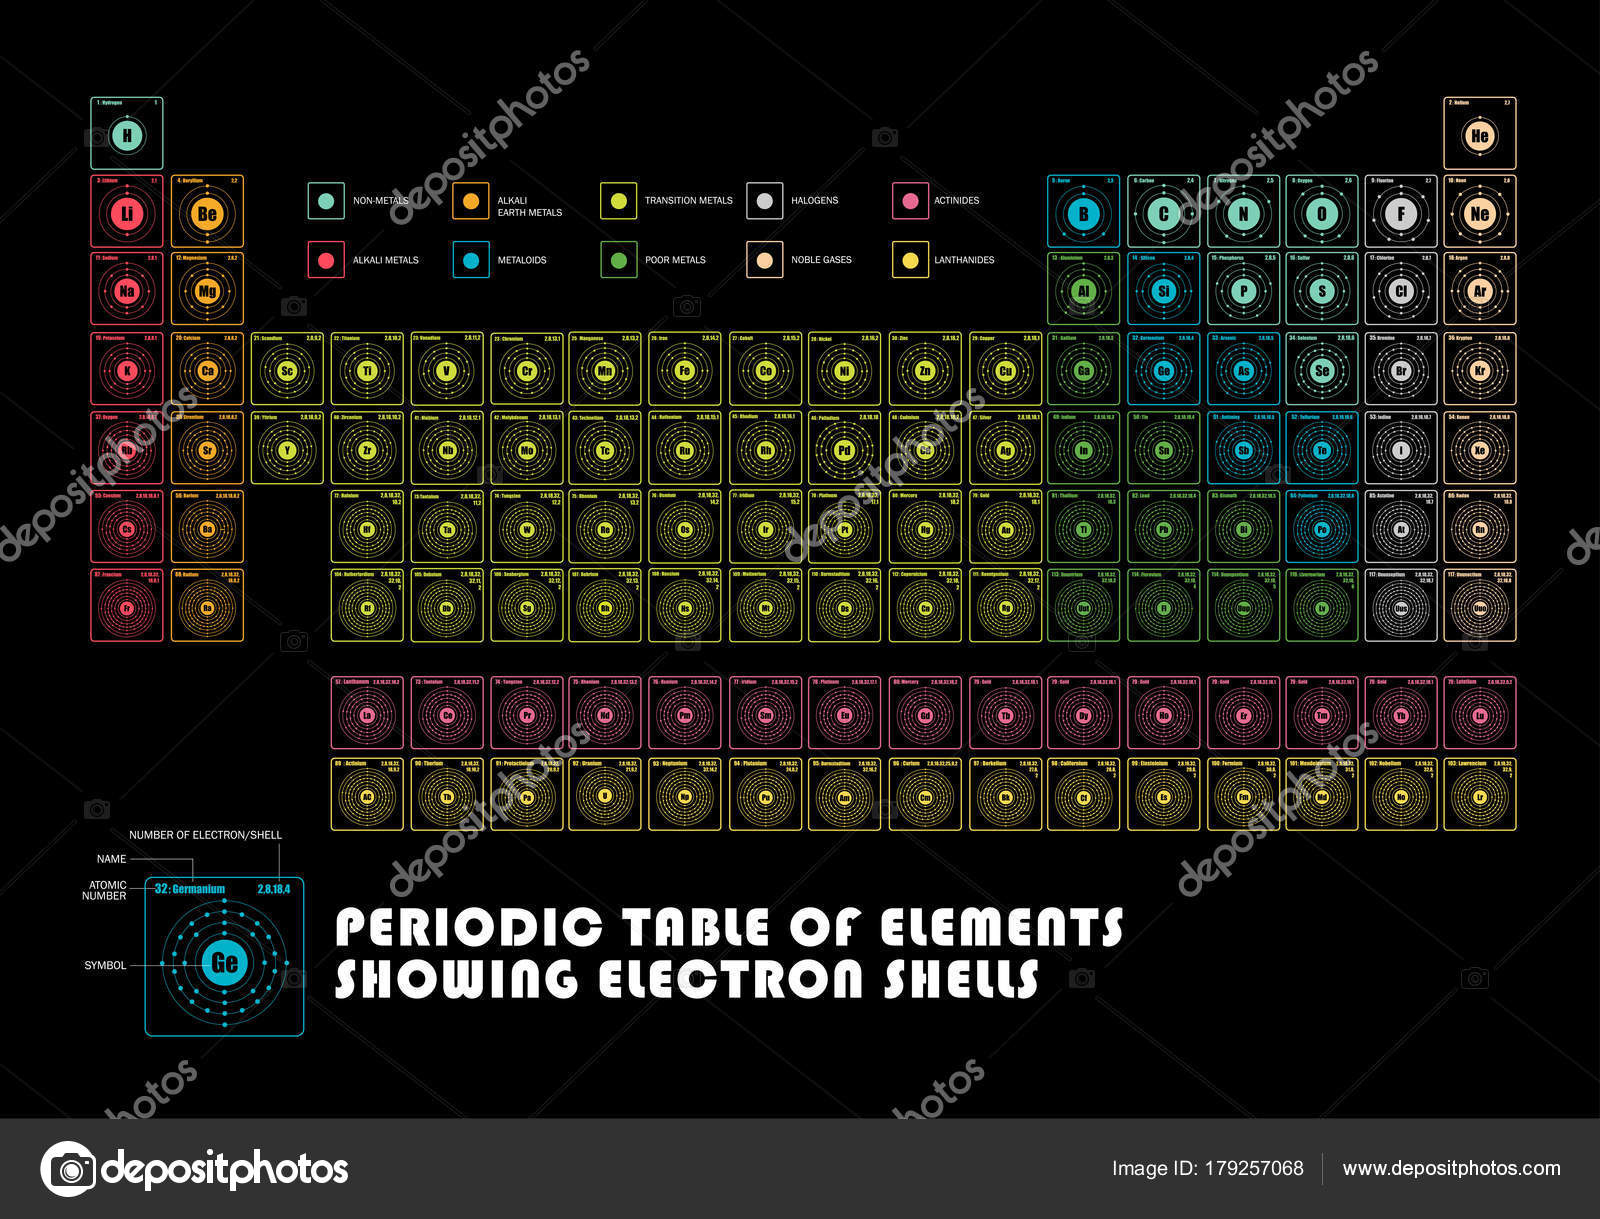 periodic table of element showing electron shells stock vector - Periodic Table Of Elements Showing Electron Shells